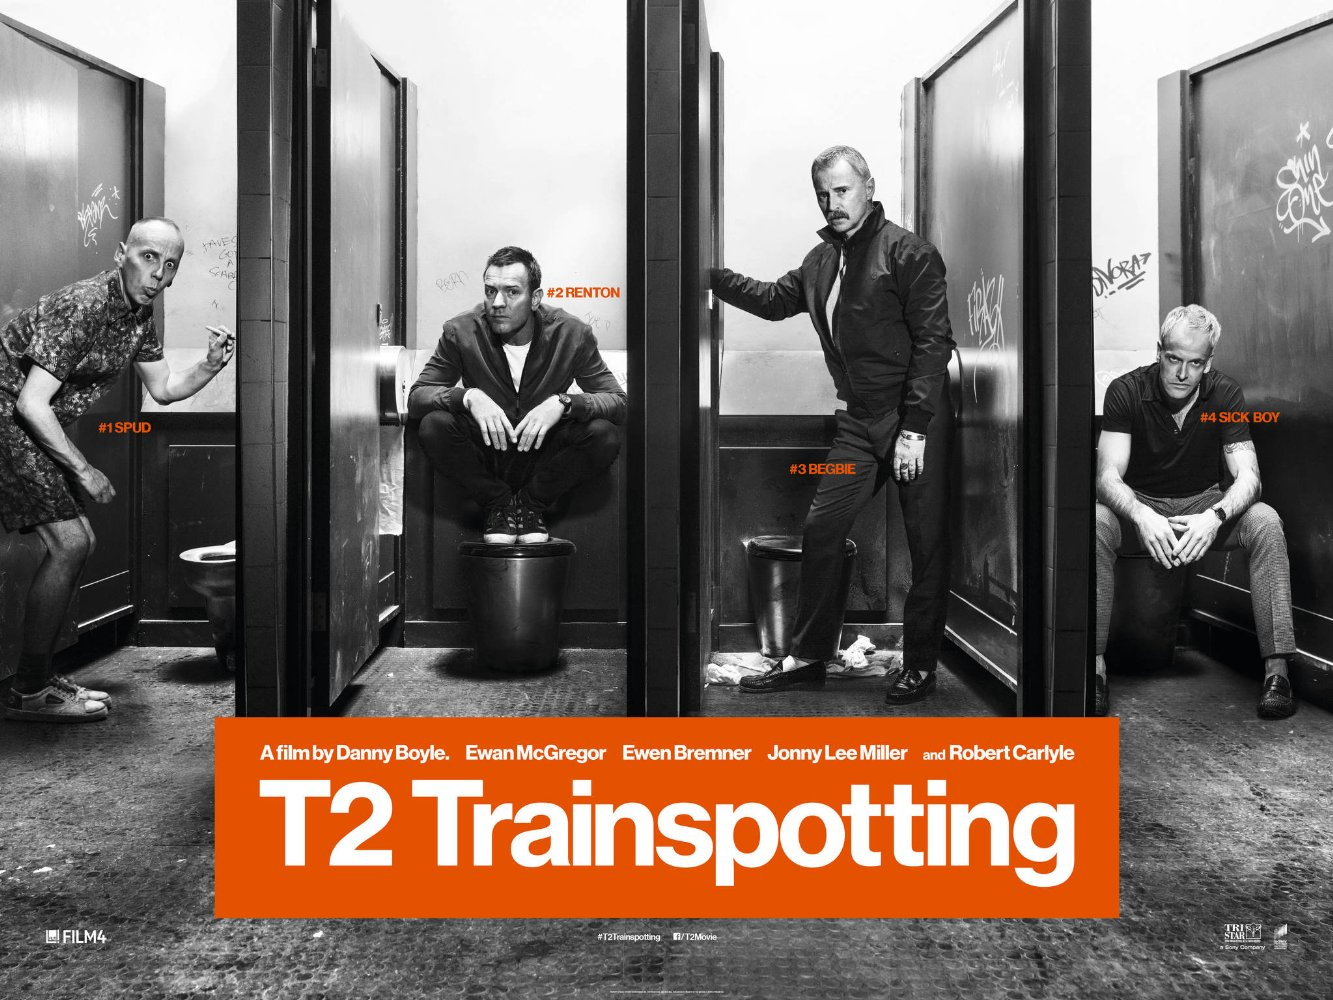 t2-trainspotting-03novembro2016-1